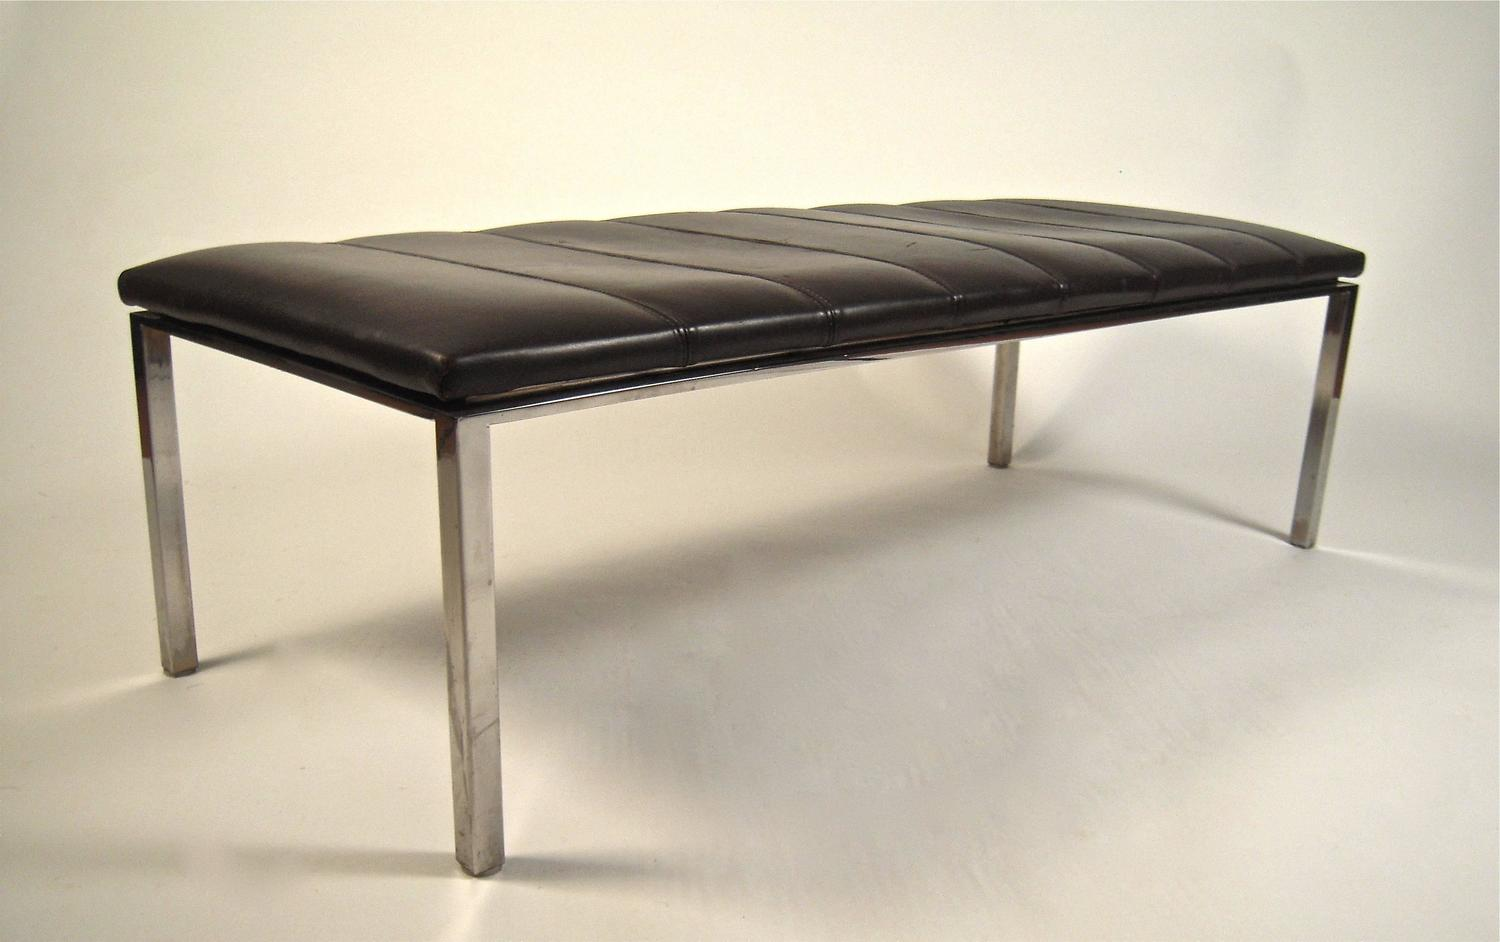 Leather Bench Coffee Table 28 Images Retro Modern White Leather Bench Ottoman Coffee Table